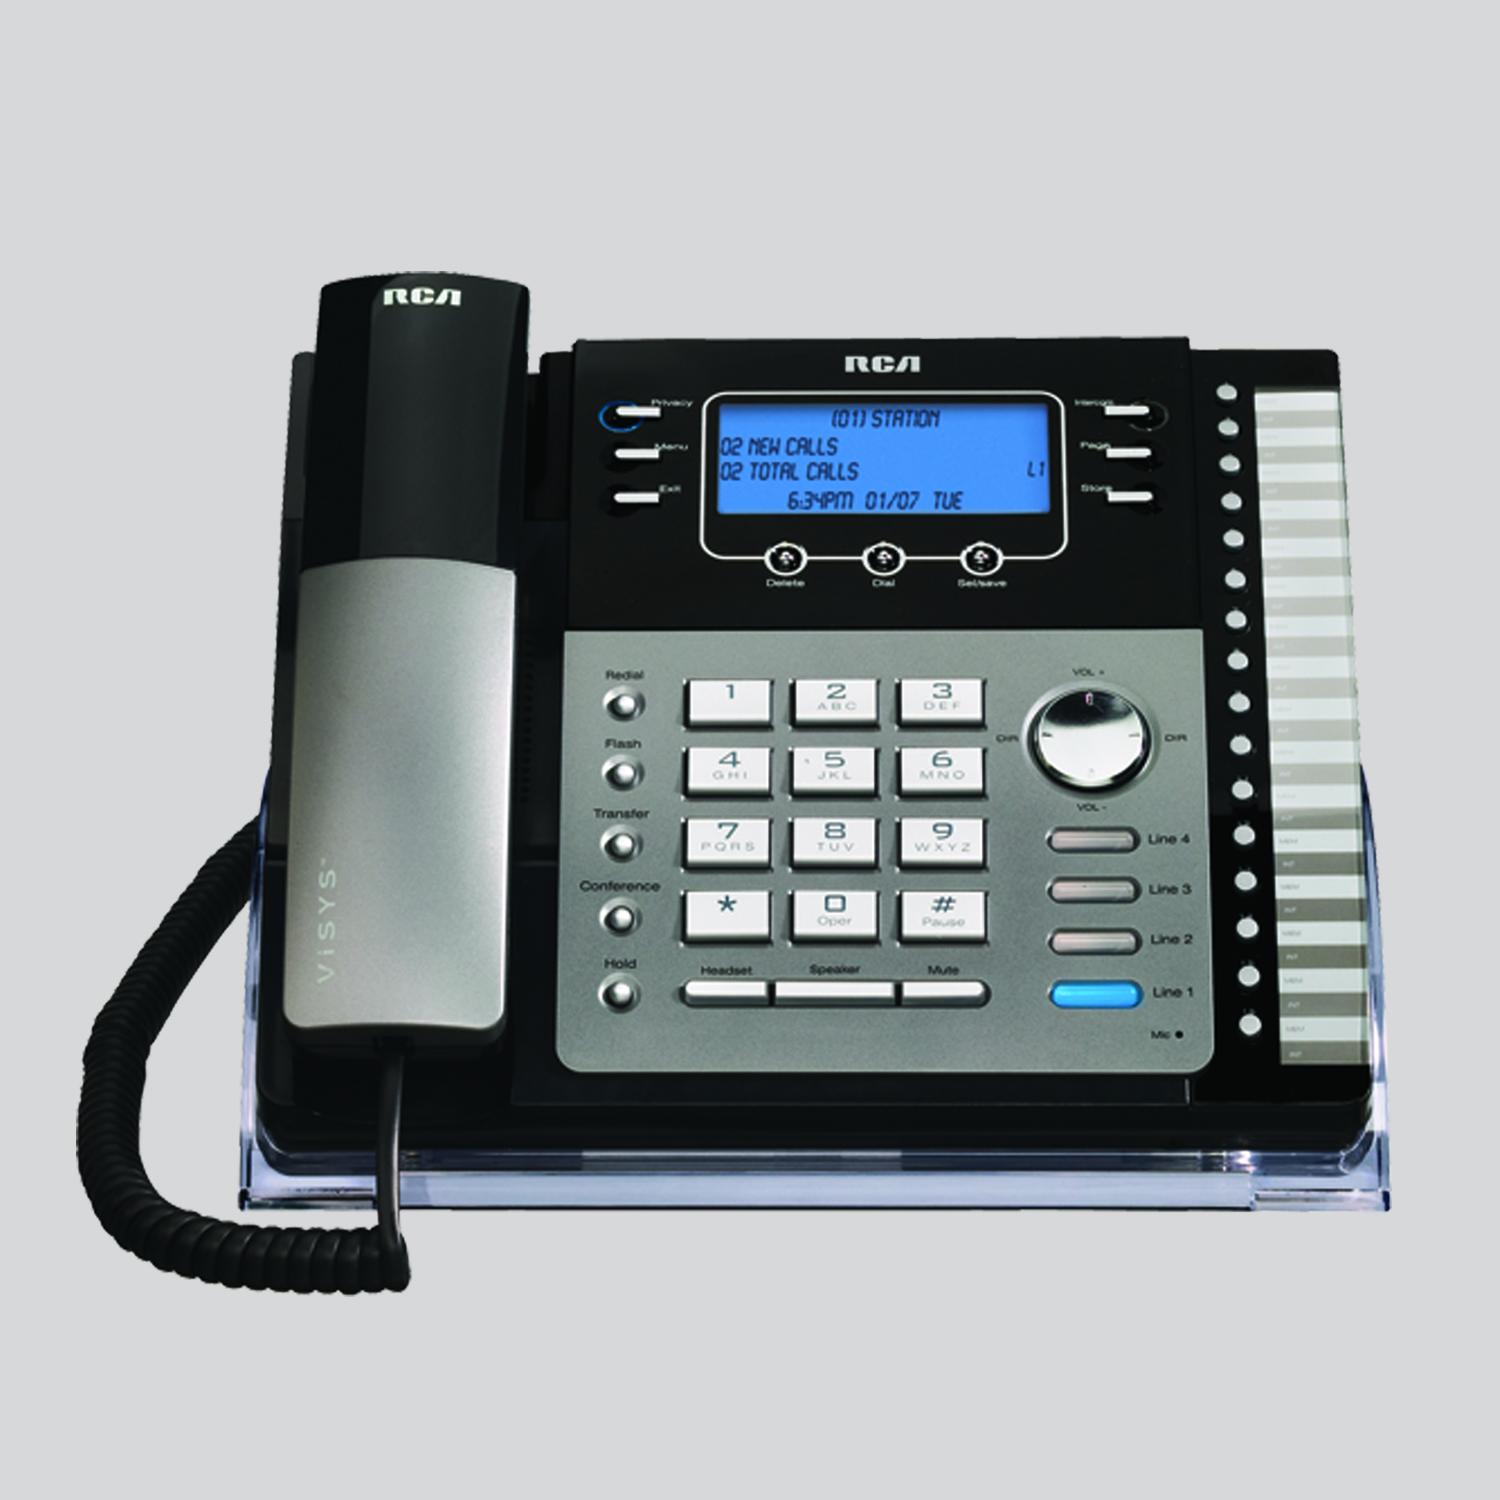 small resolution of 4 line small business system desk phone